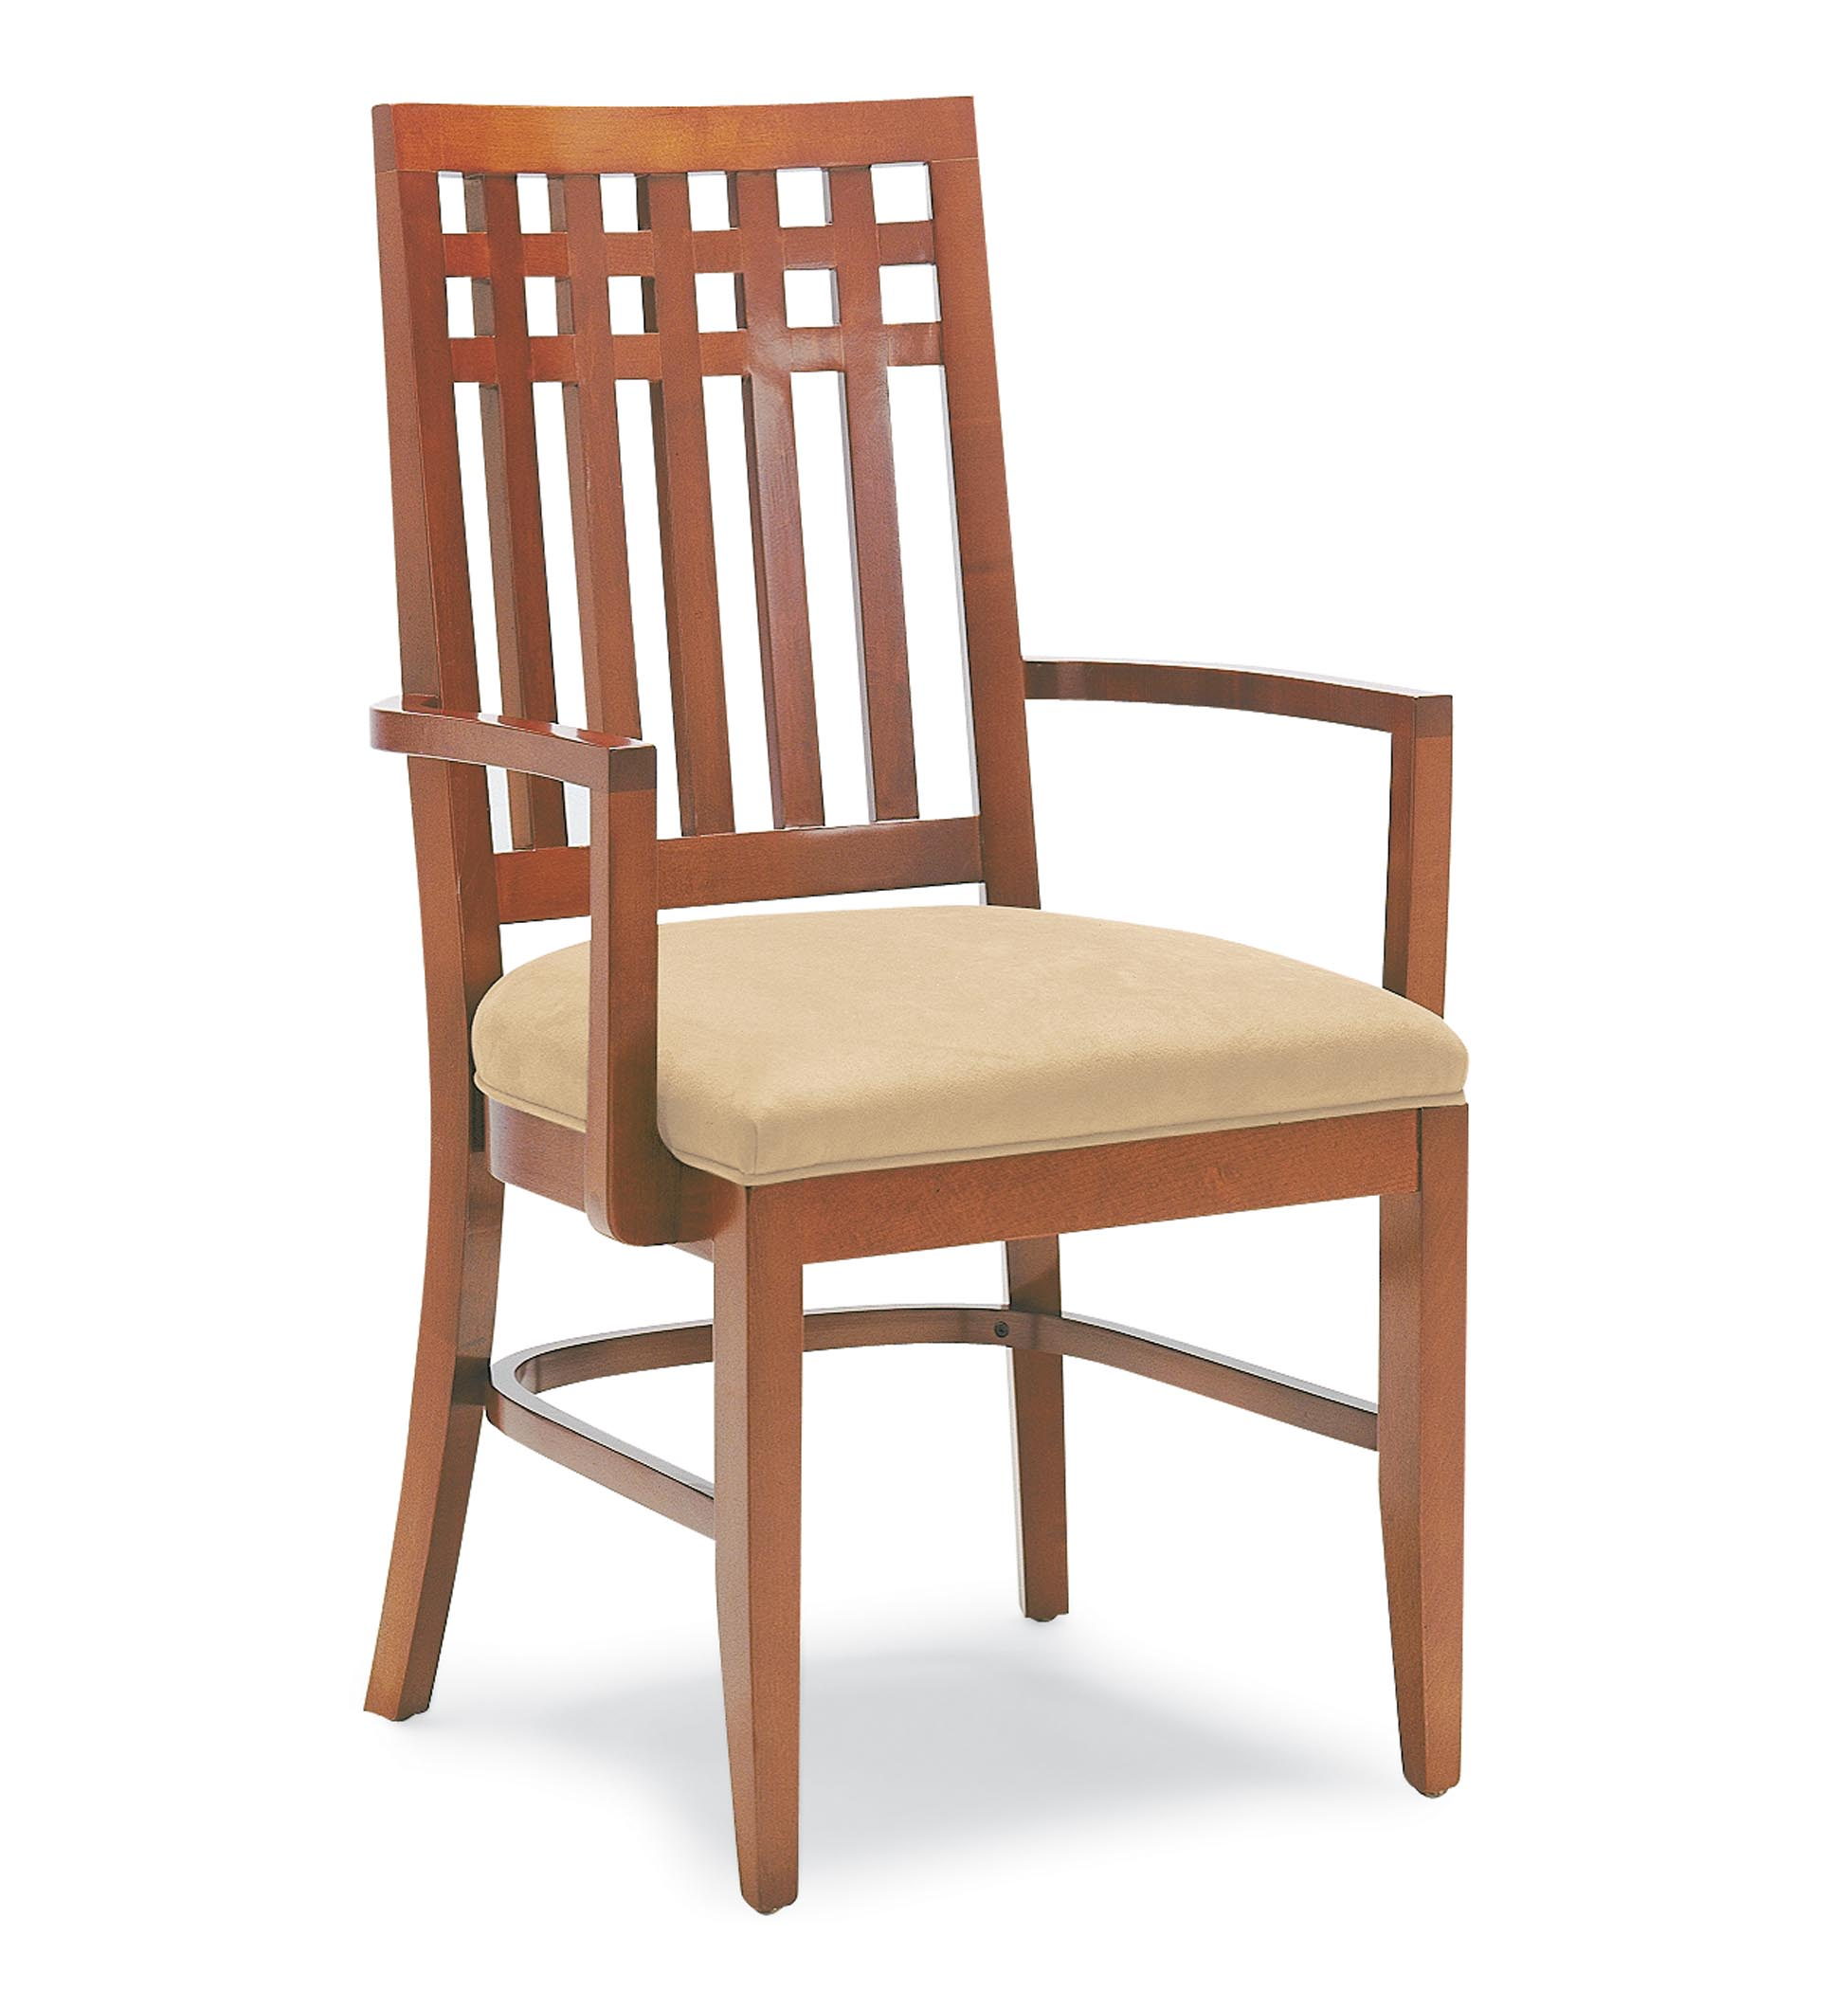 Chair Wooden 3455 Wood Arm Chair